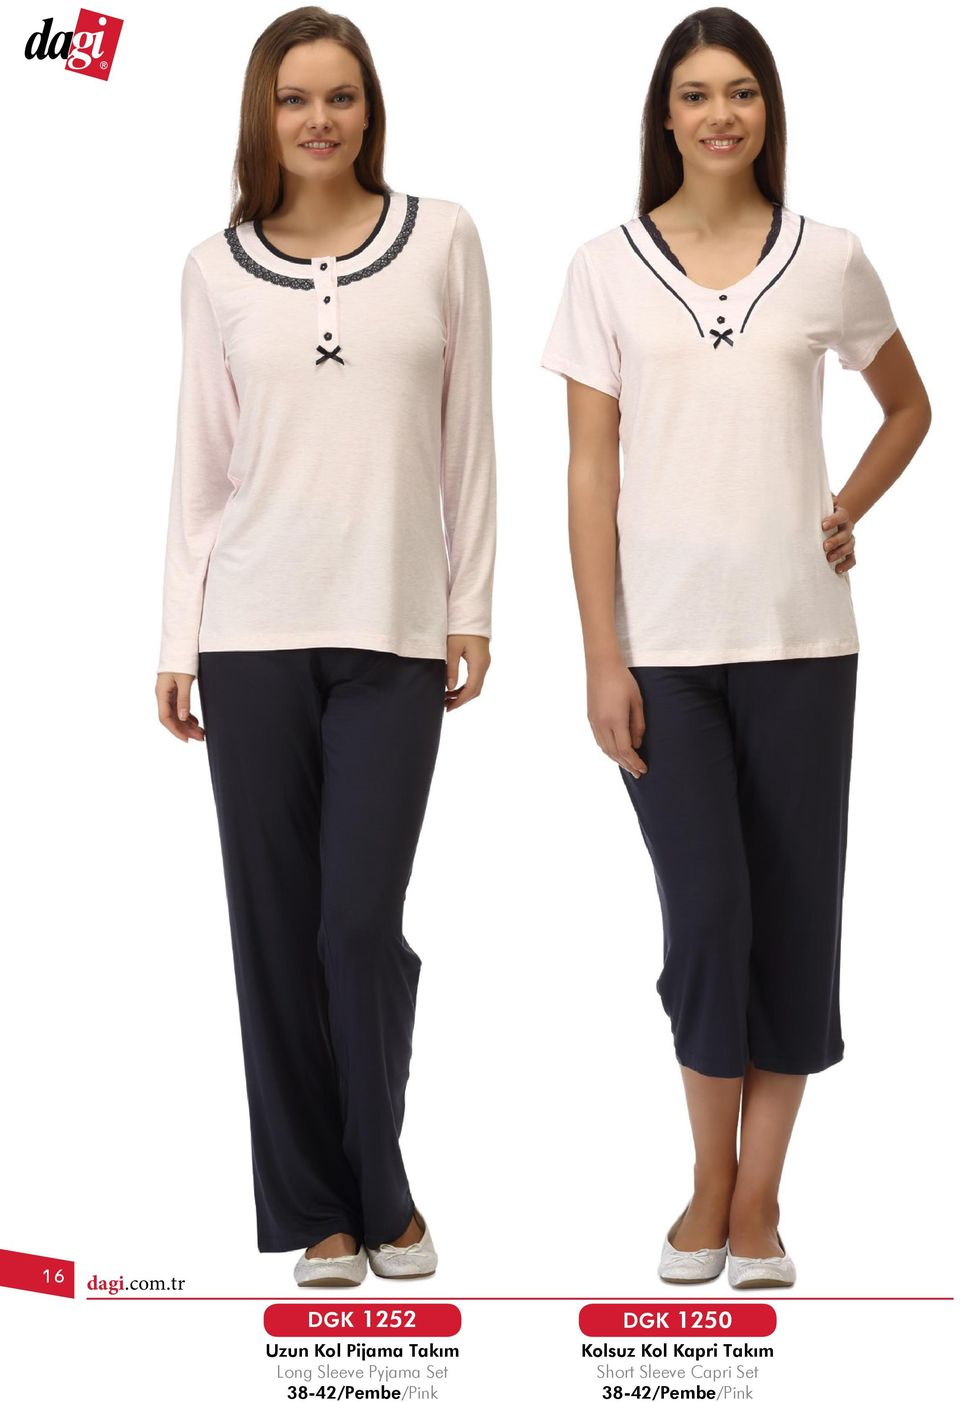 Takım Long Sleeve Pyjama Set